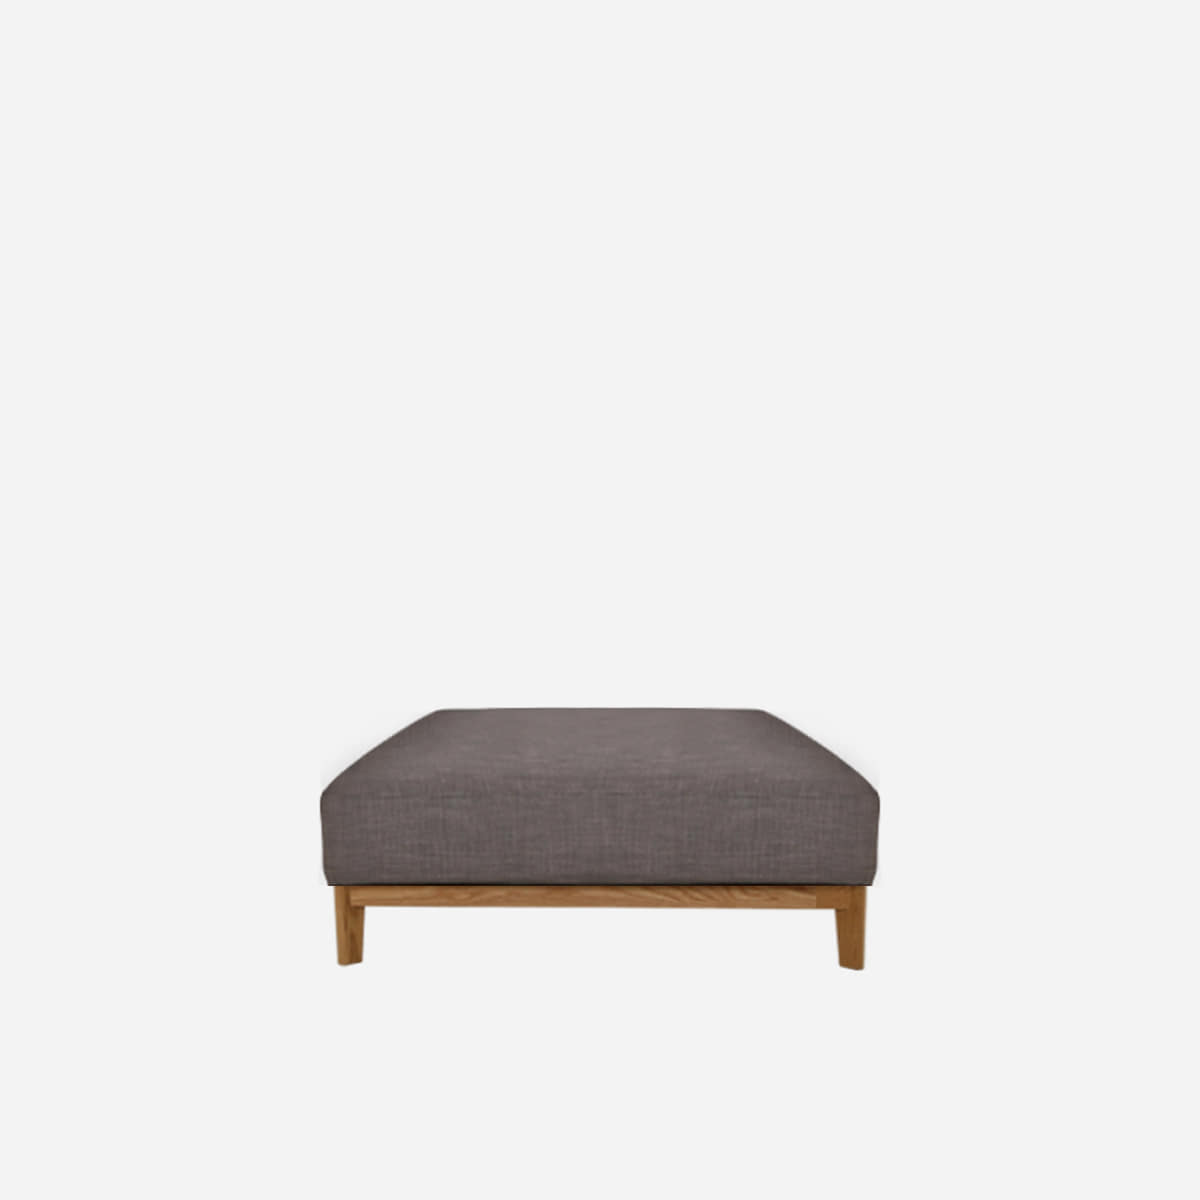 Orginal Oak Sofa ottoman